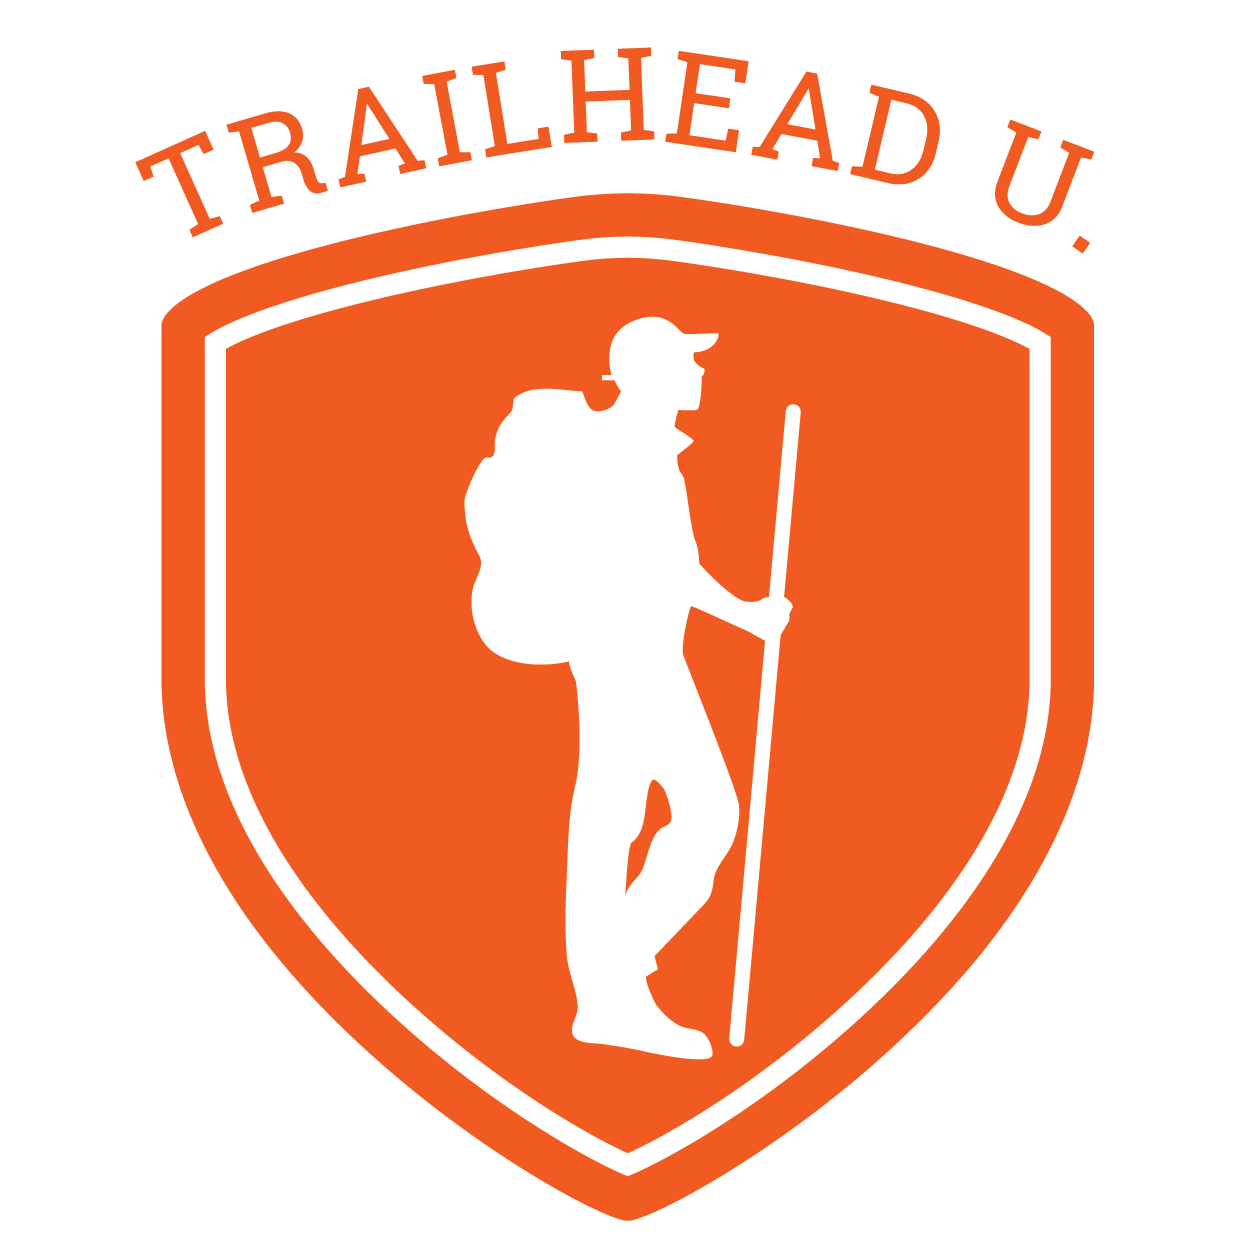 Trailhead U Trailhead Design Co Icon